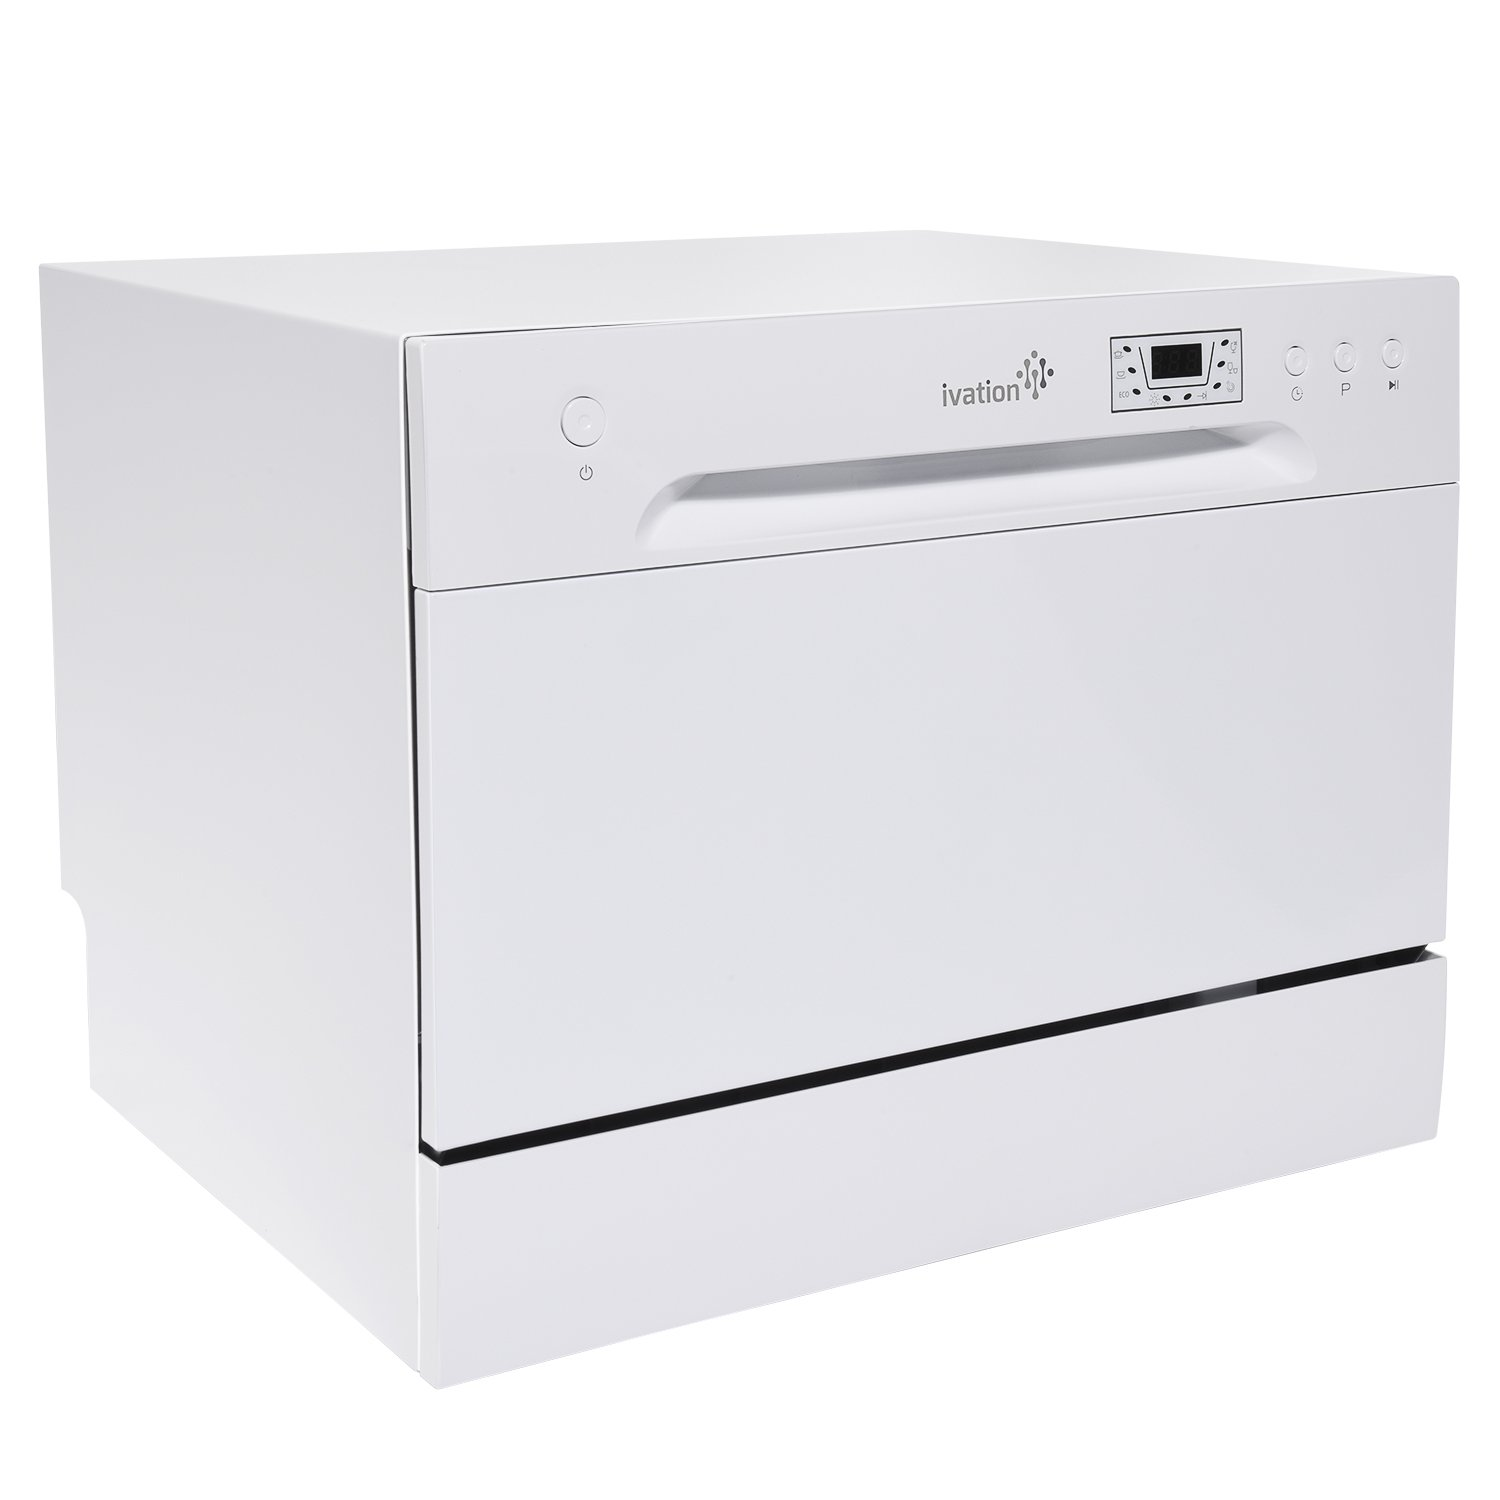 Ivation Countertop Dishwasher – Compact, Portable Stainless Steel Dishwasher for Apartment, Condo, RV, Office & Other Small Kitchens – 6 Place Setting Capacity – White by ivation